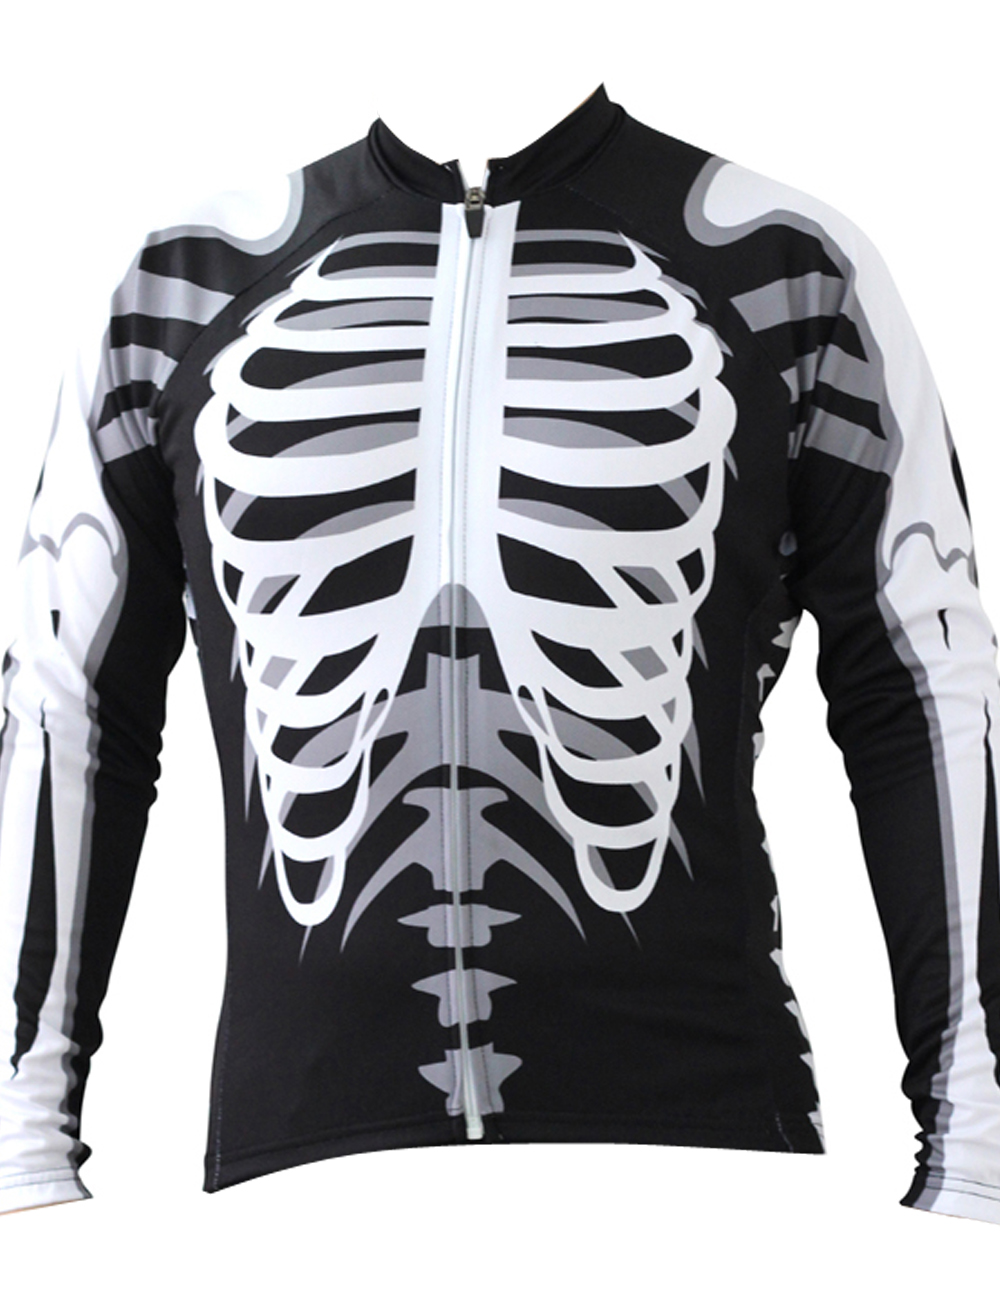 Skeleton Alien SportsWear Mens Long Sleeve Cycling Jersey Cycling Clothing  Bike Shirt Size 2XS To 6XL 9d8b38994